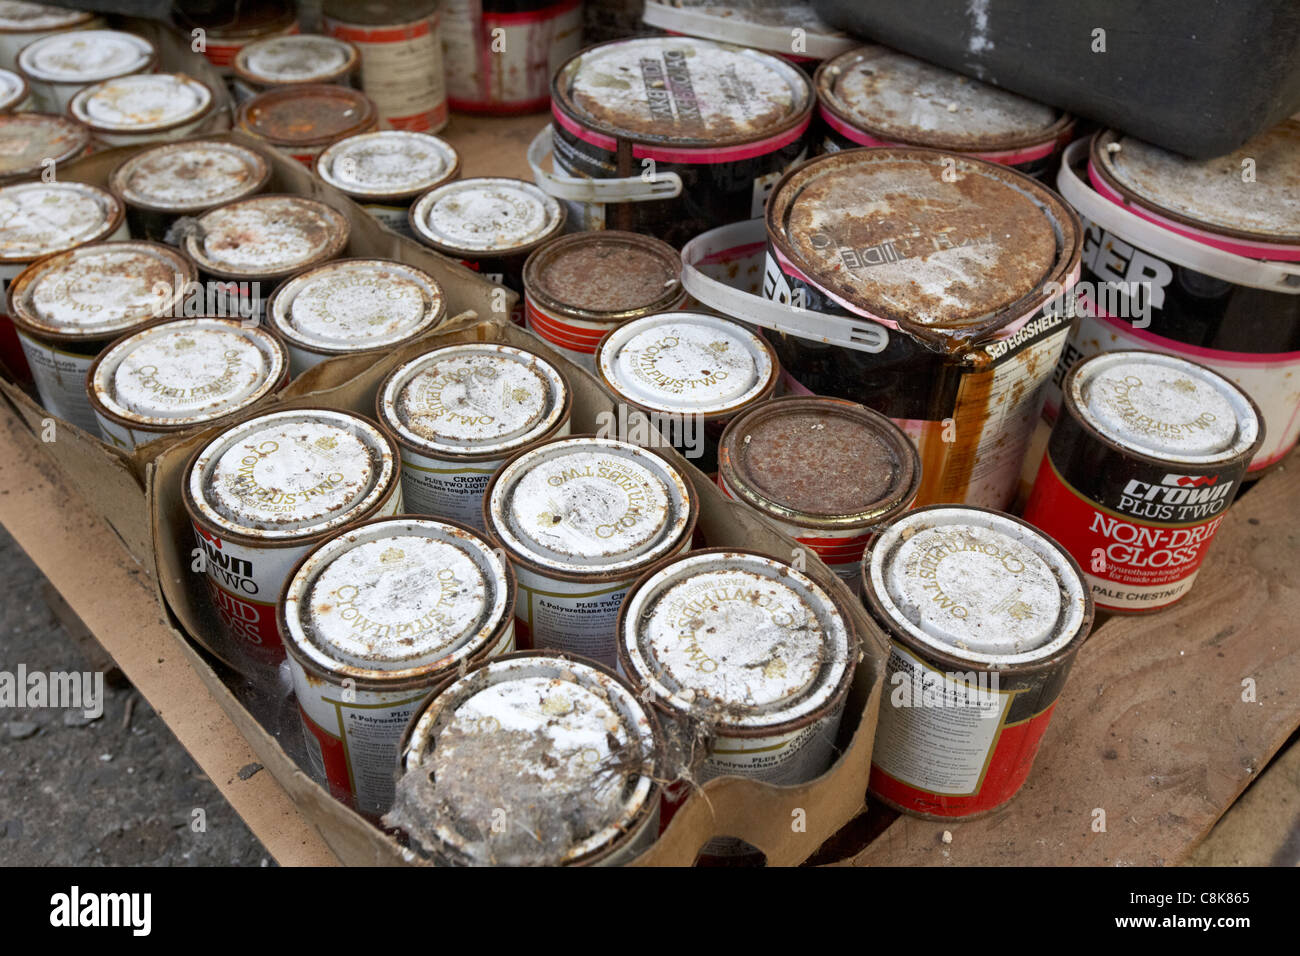 rusty cans stockfotos rusty cans bilder alamy. Black Bedroom Furniture Sets. Home Design Ideas